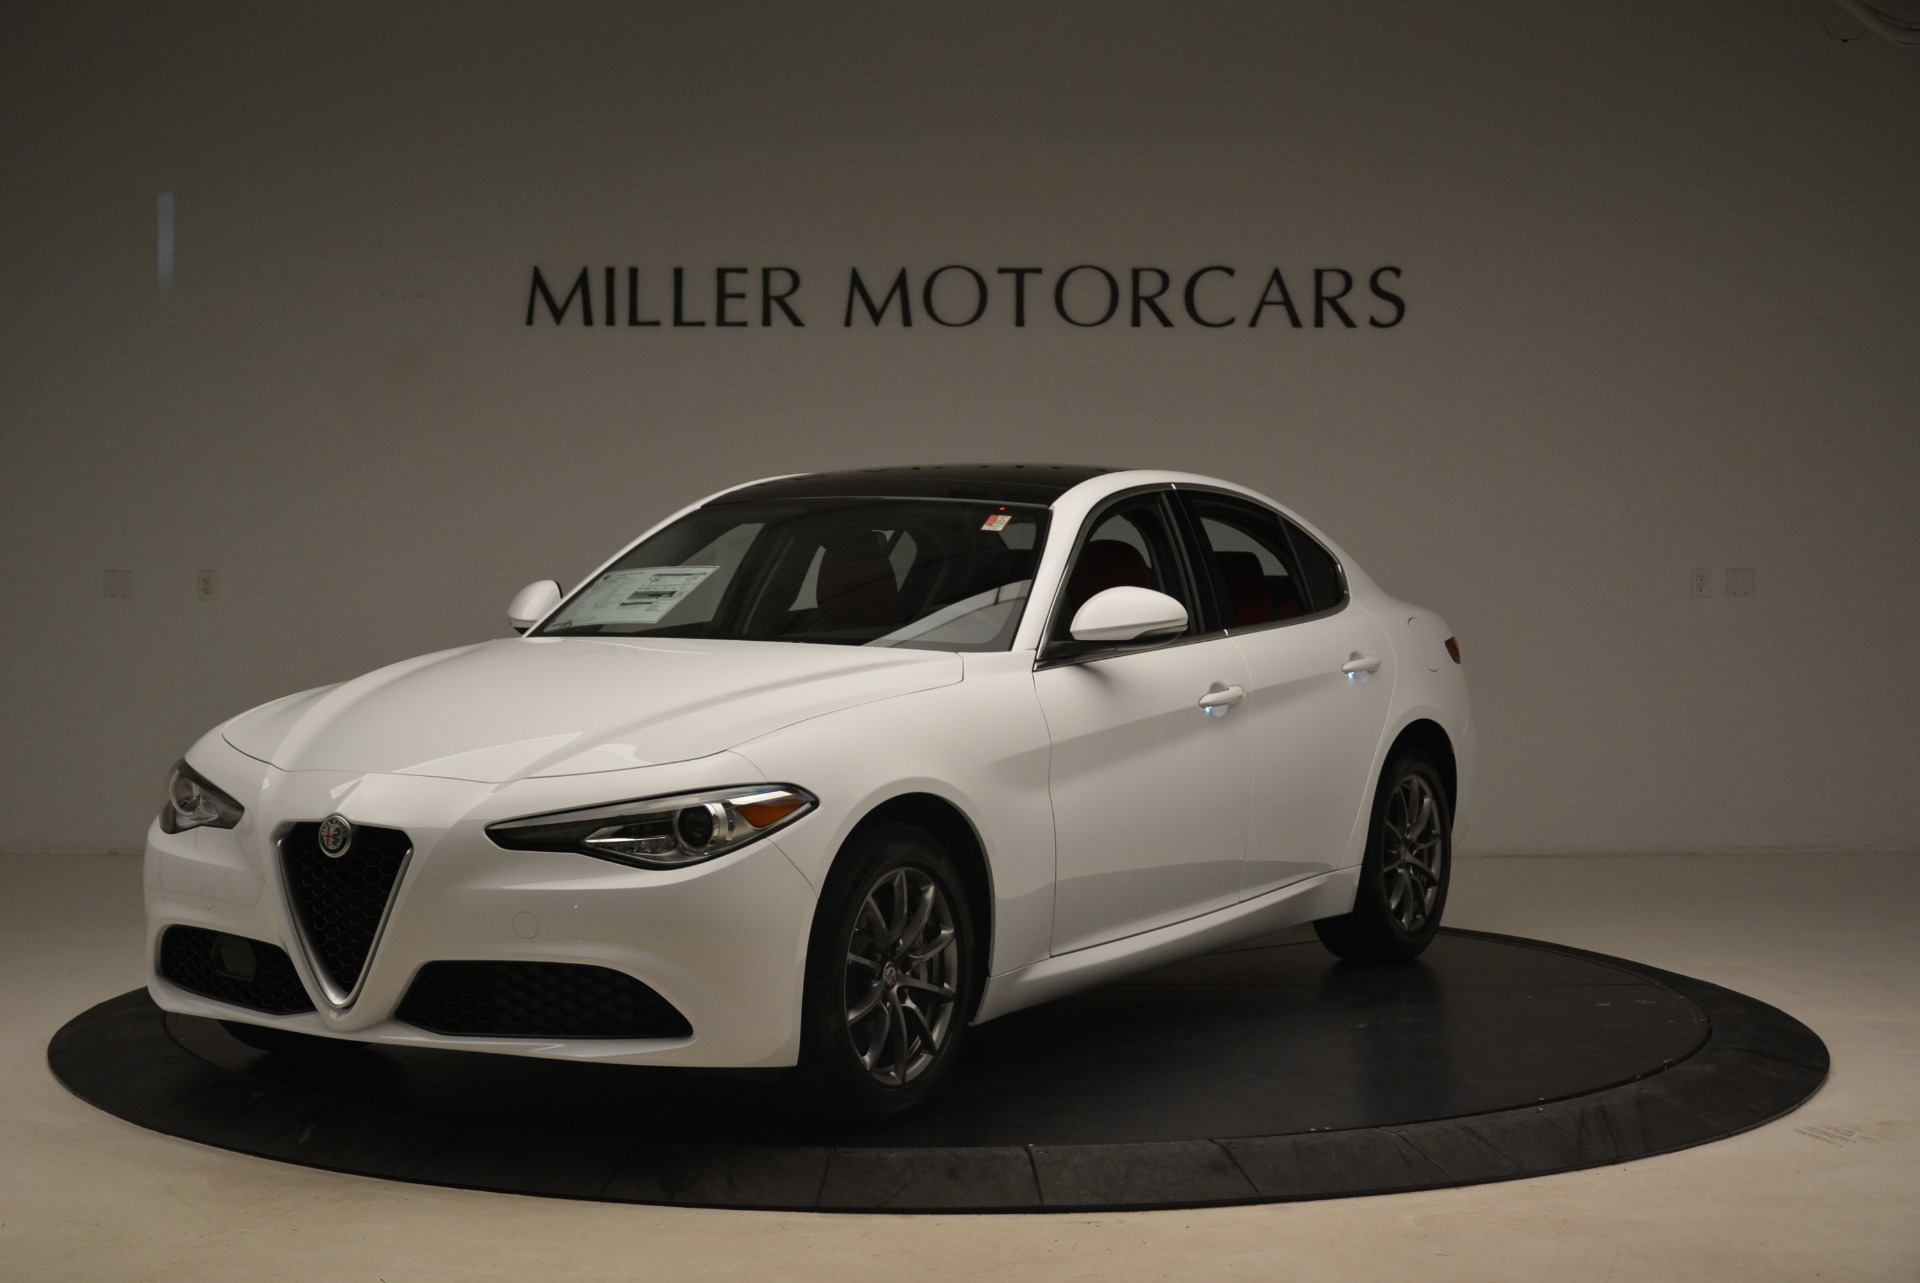 2018 alfa romeo giulia q4 stock # lw214 for sale near greenwich, ct